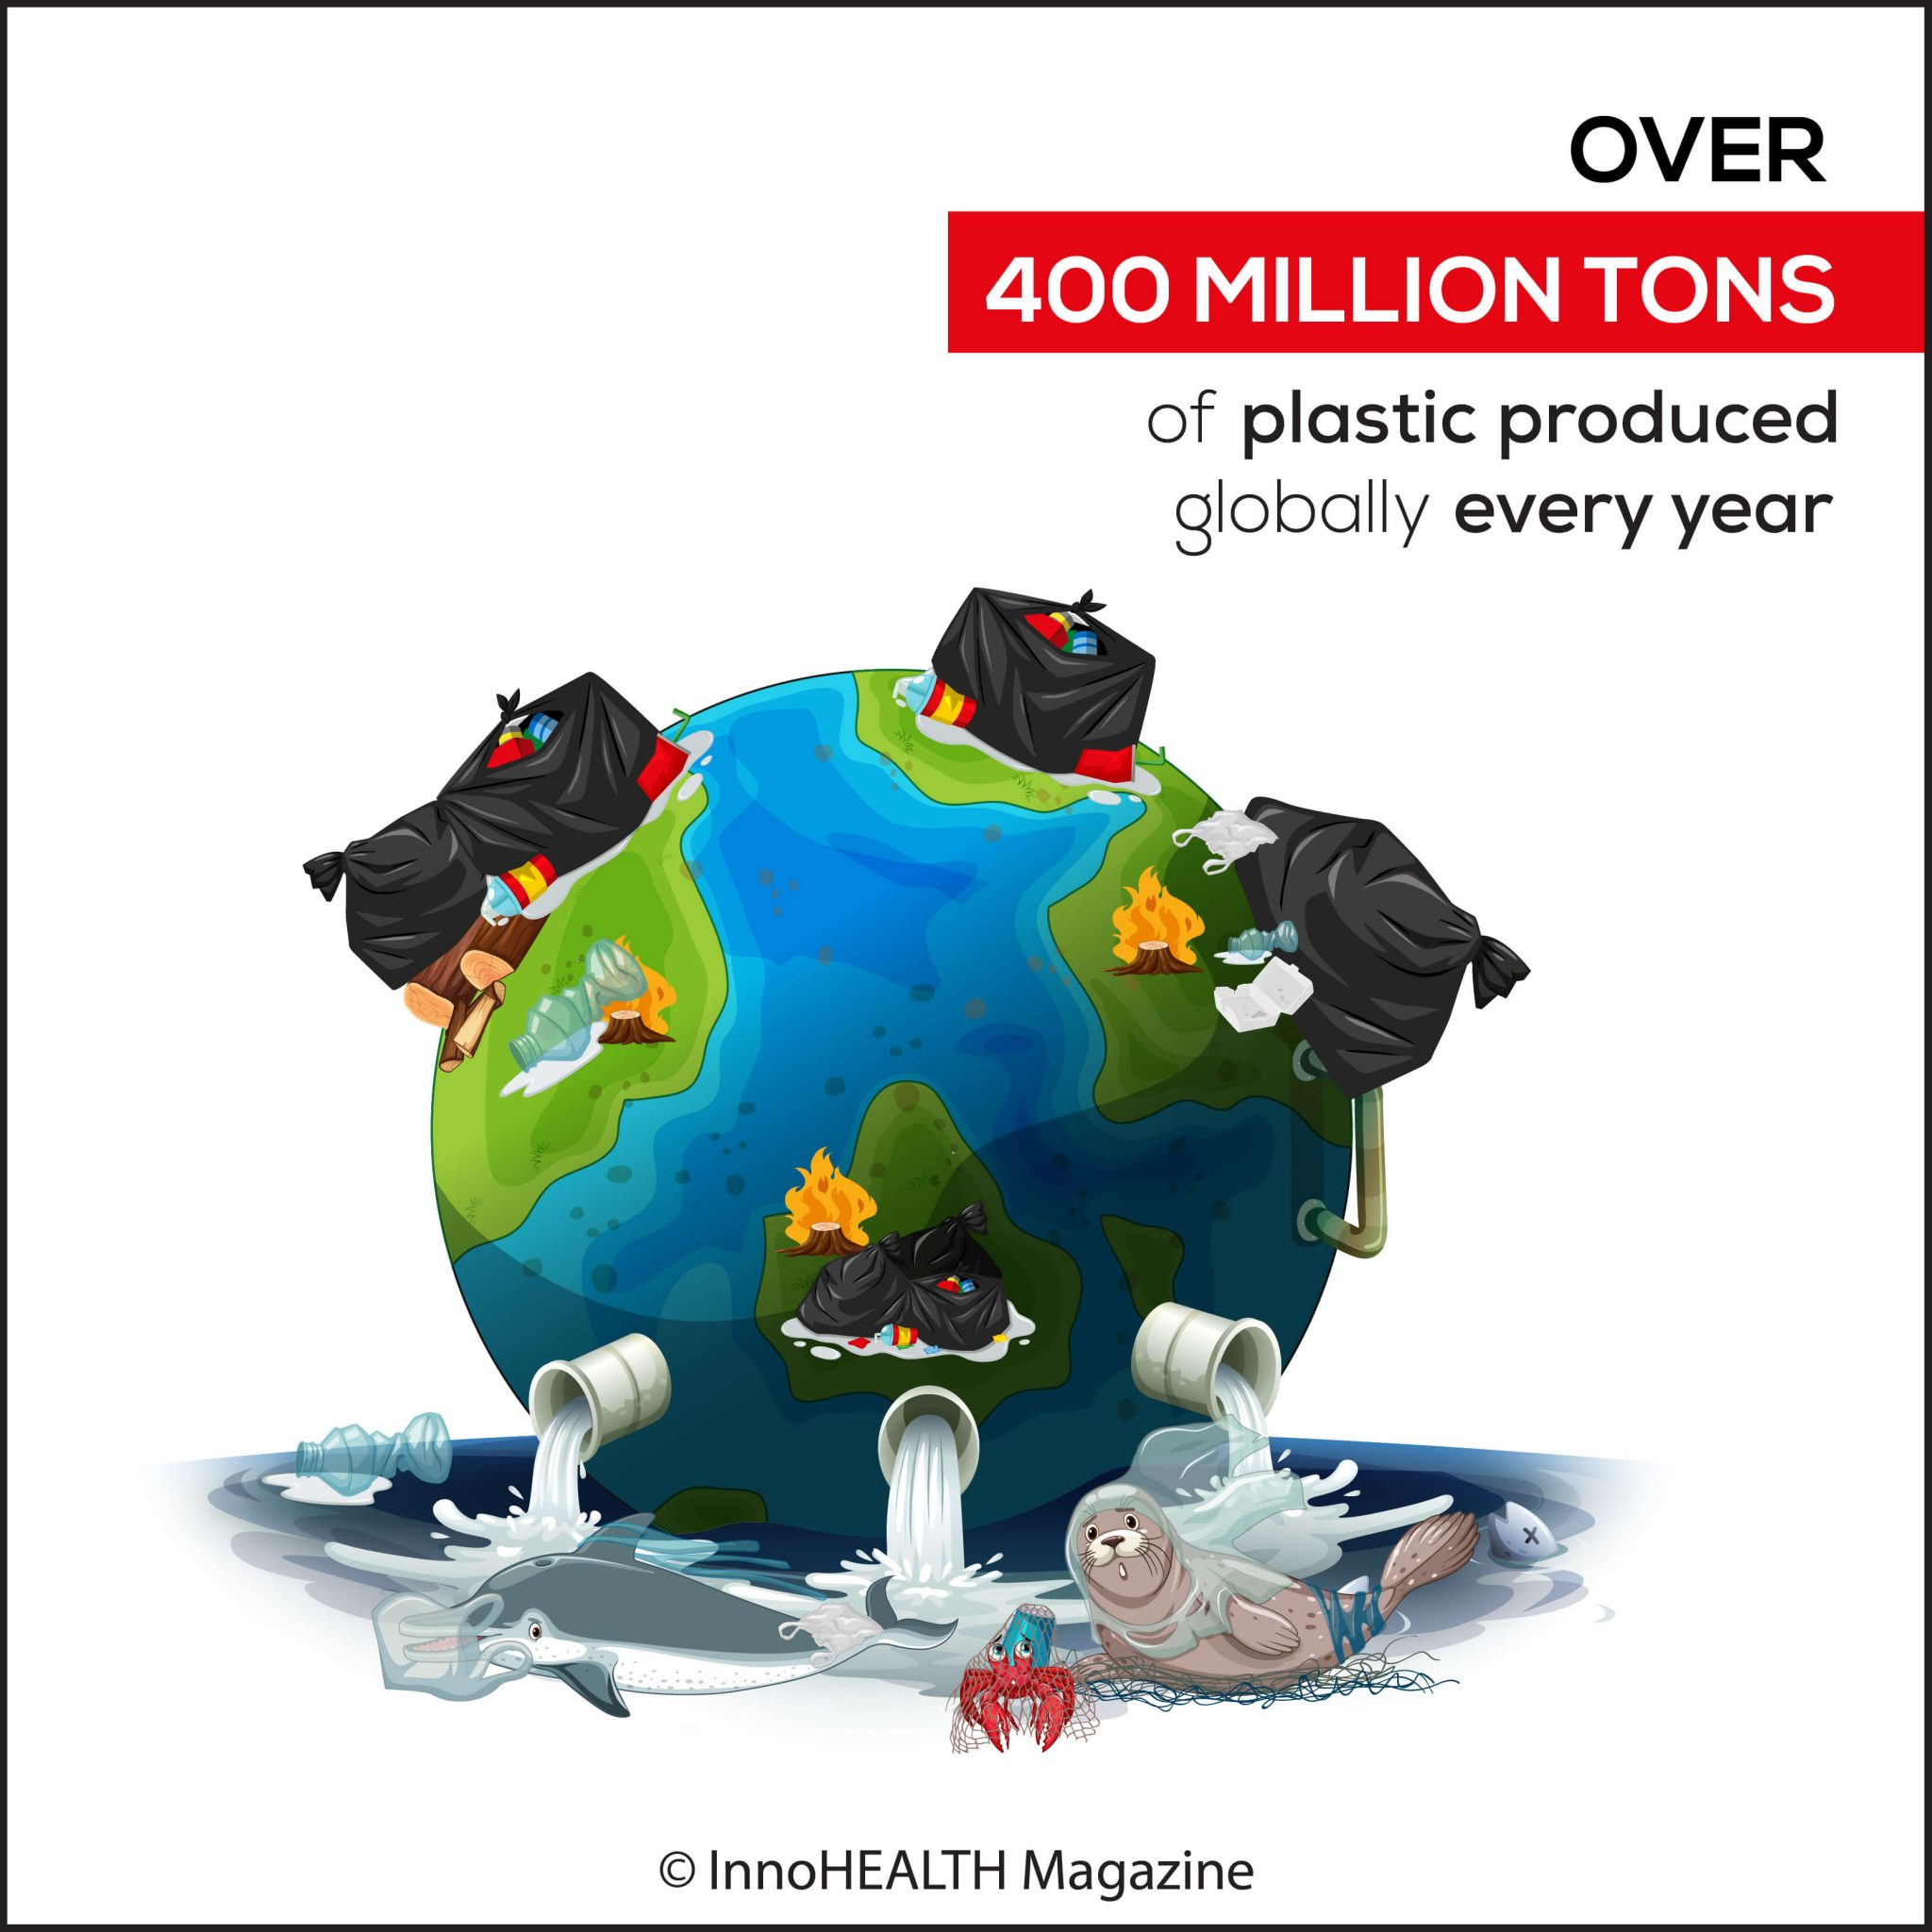 Over 400 million plastic produced globally every year